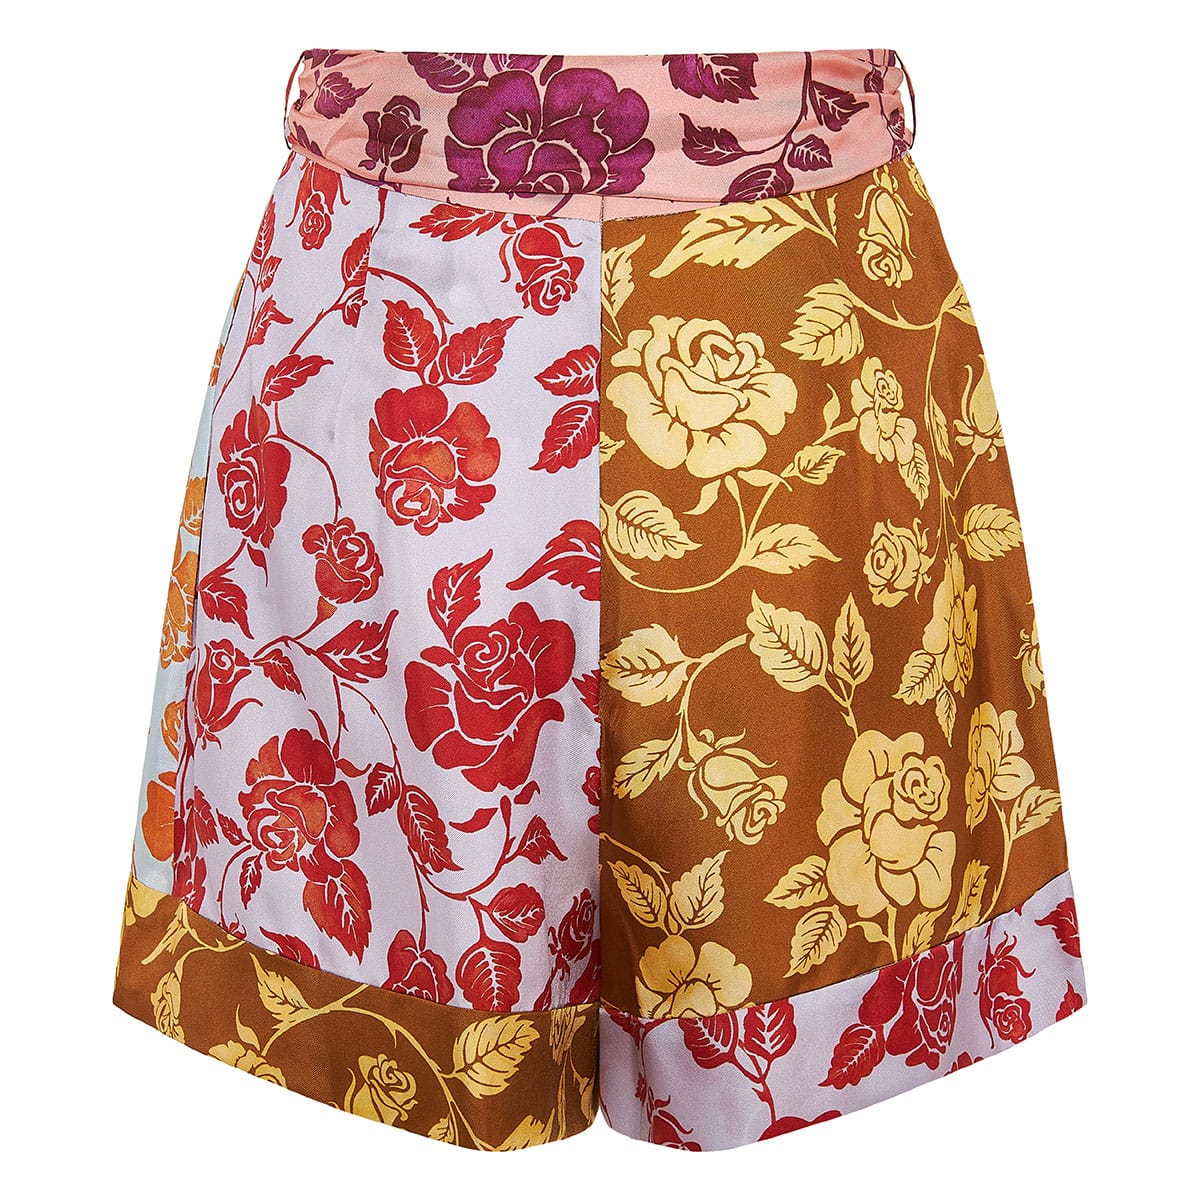 The Lovestruck patchwork floral shorts